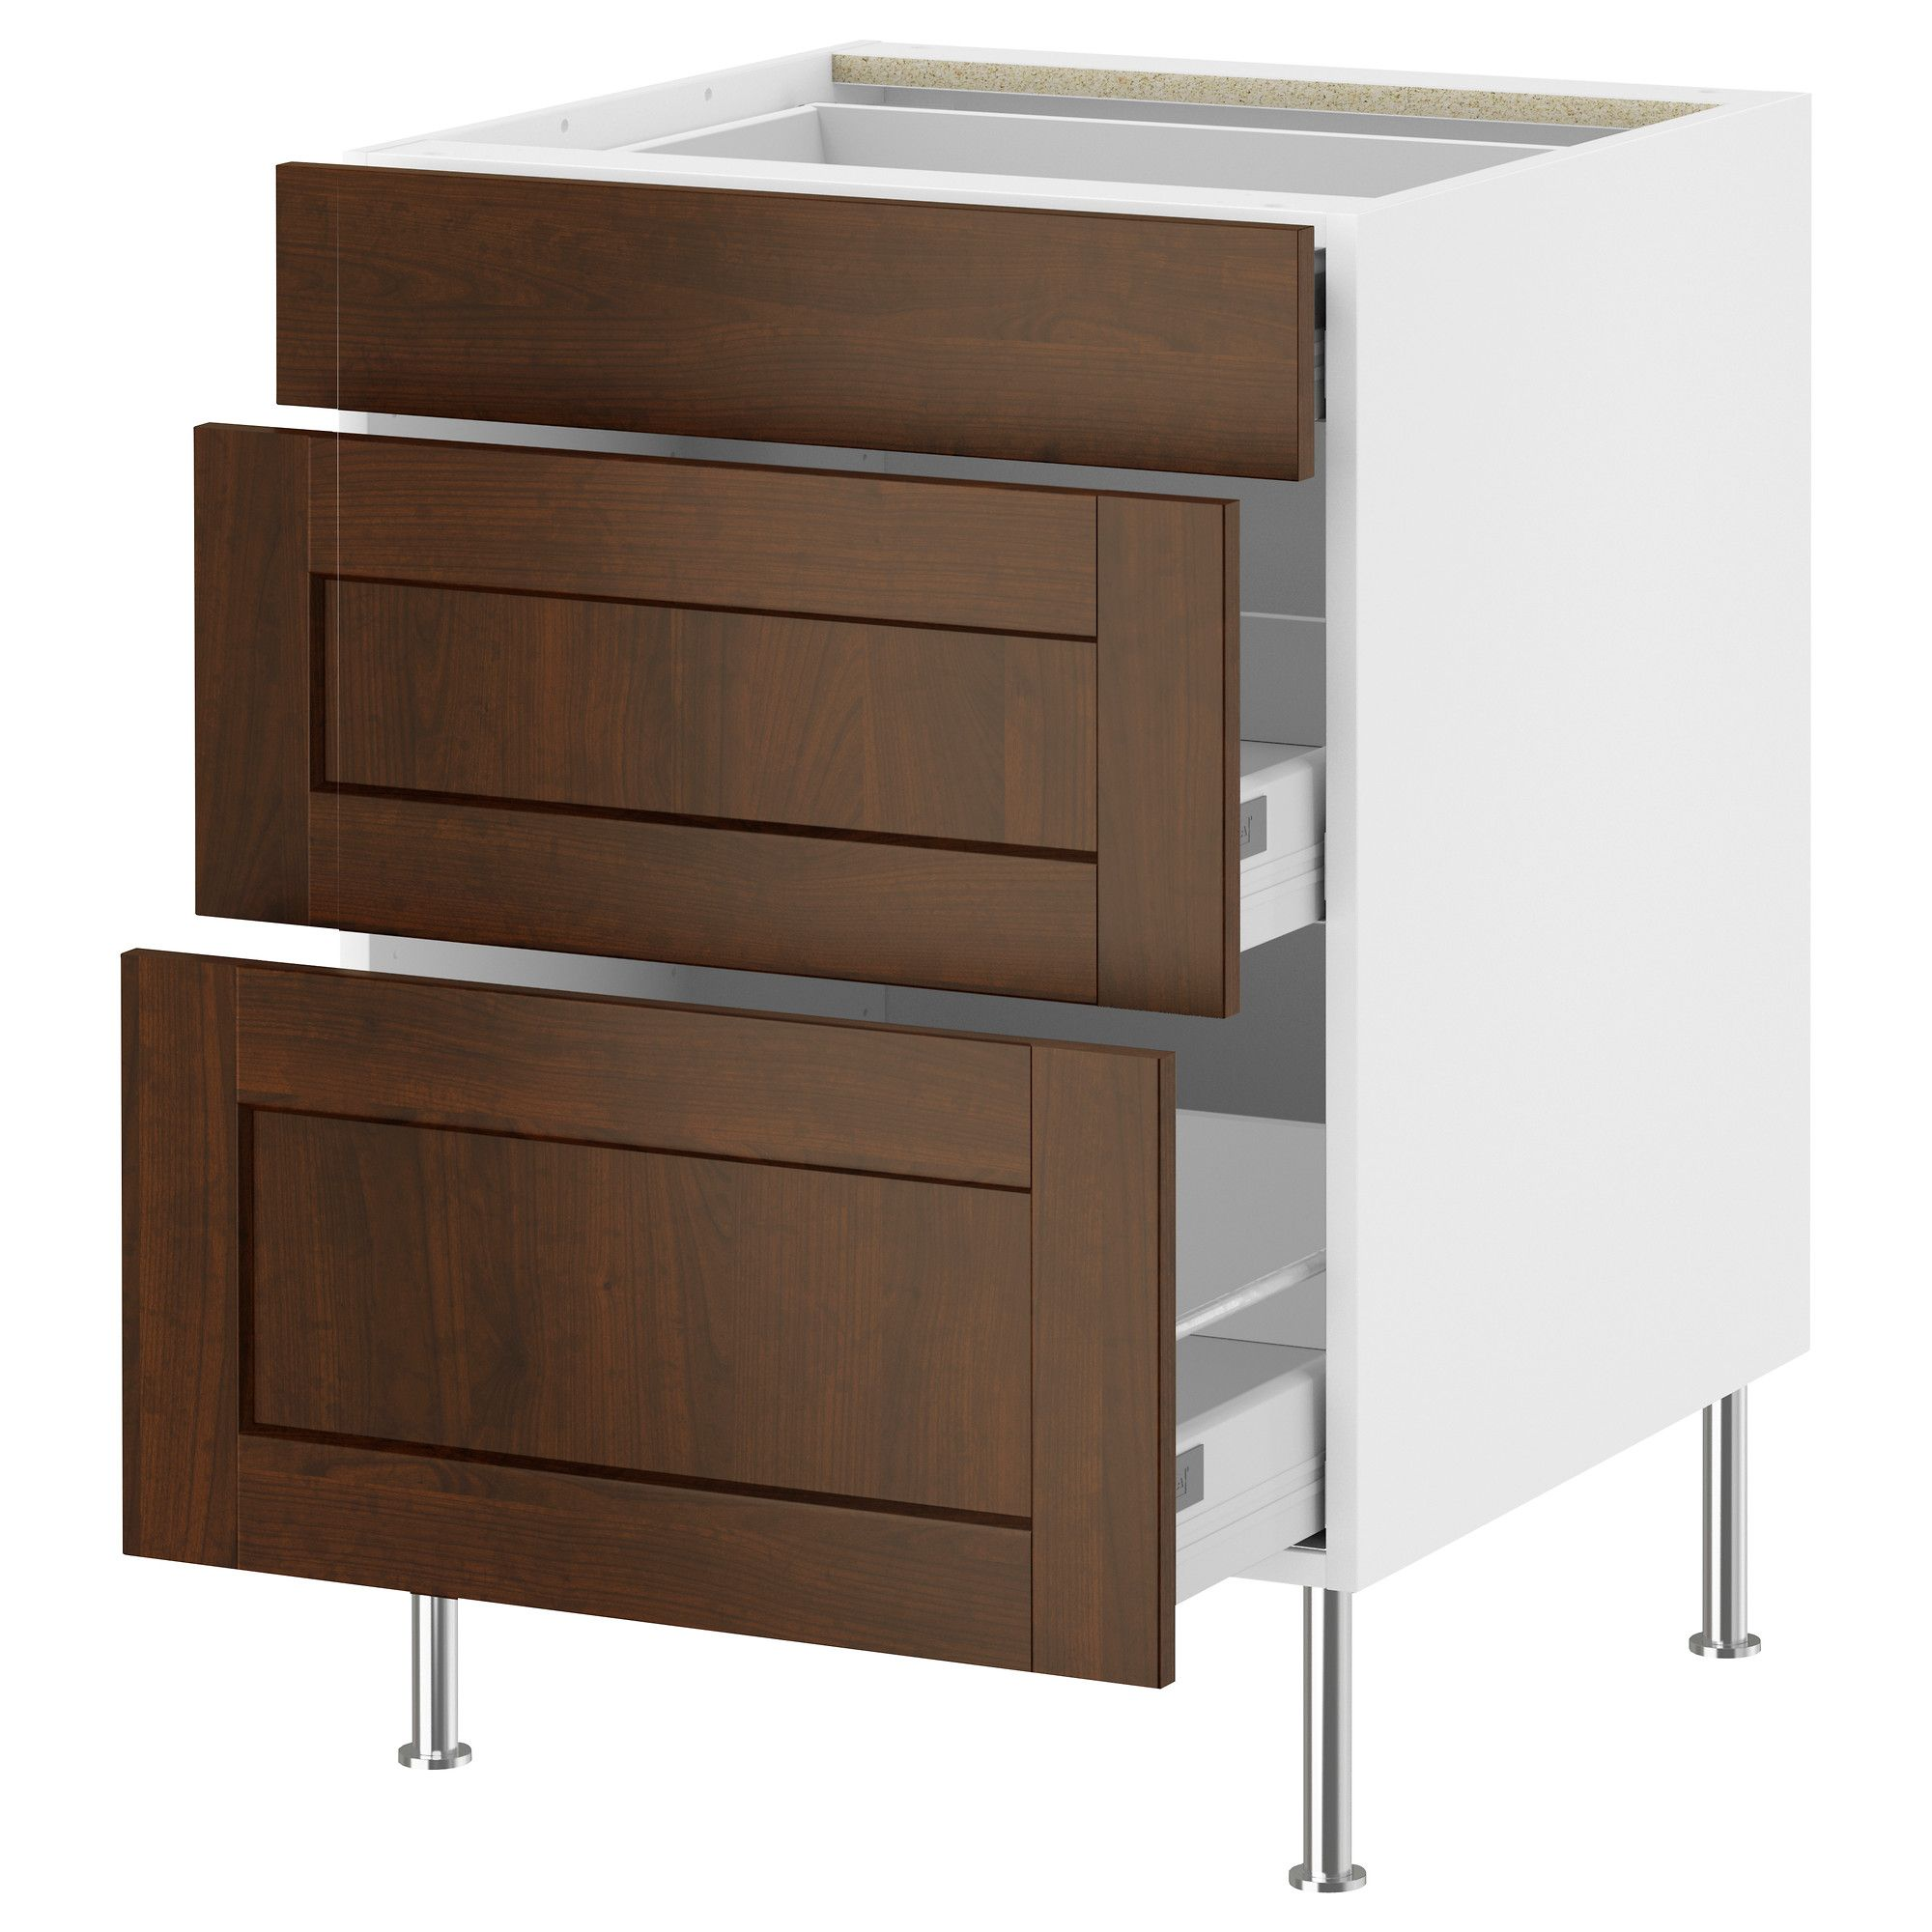 US Furniture and Home Furnishings Ikea built in, Base